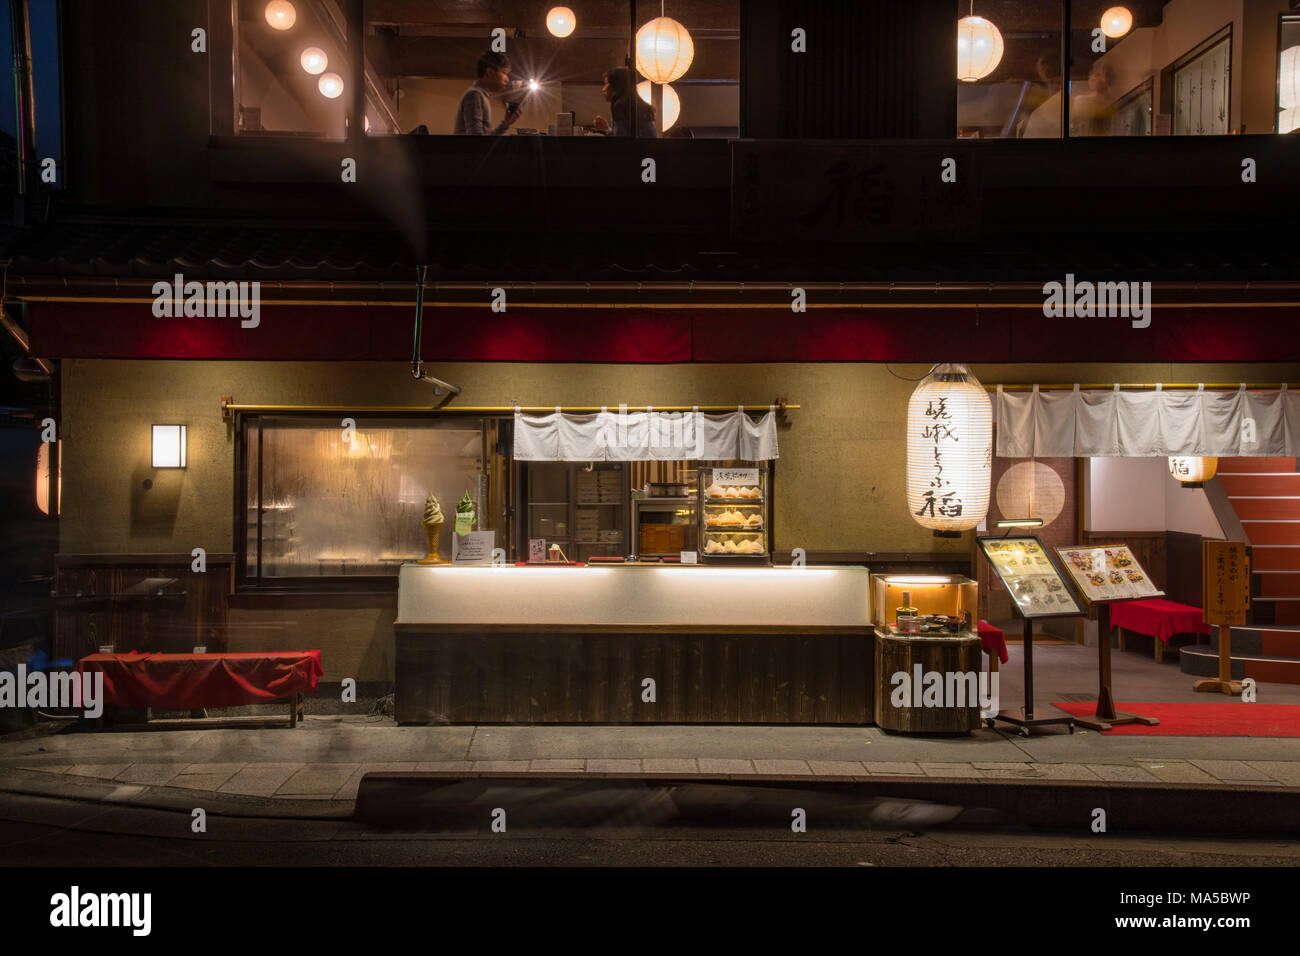 L'Asie, Japon, Nippon, Nihon, Kyoto, Restaurant japonais Photo Stock